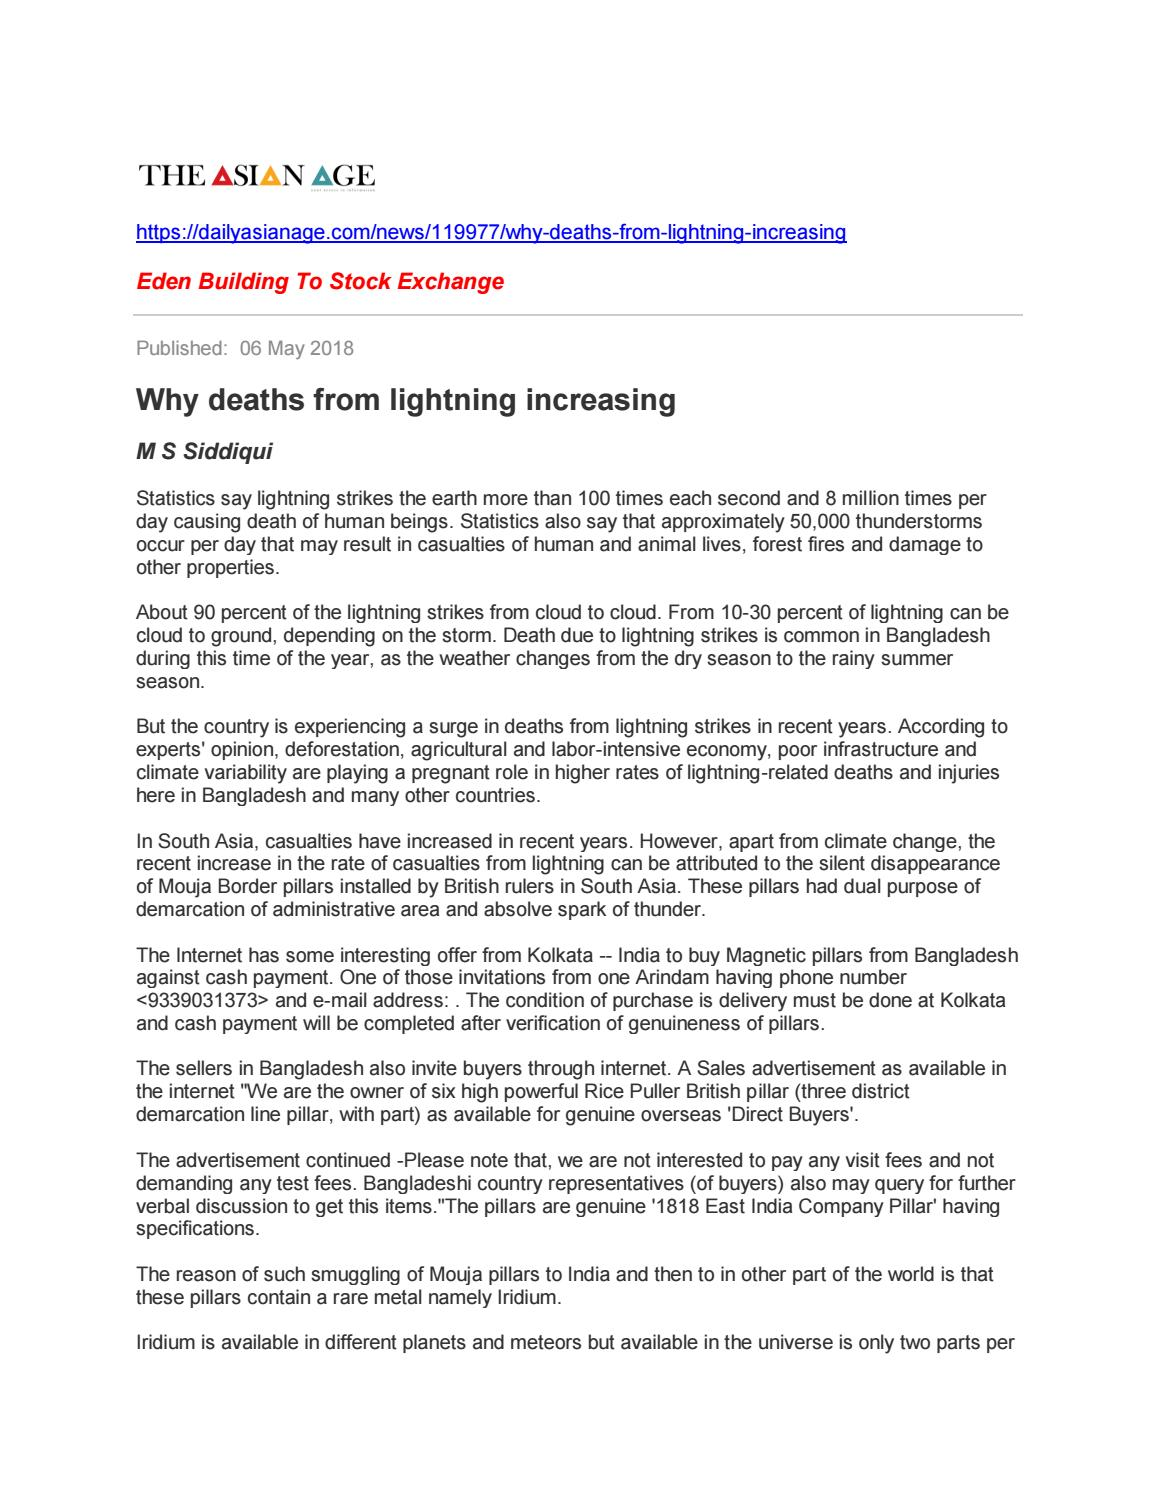 Why deaths from lightning increasing by Mohammad Shahjahan Siddiqui